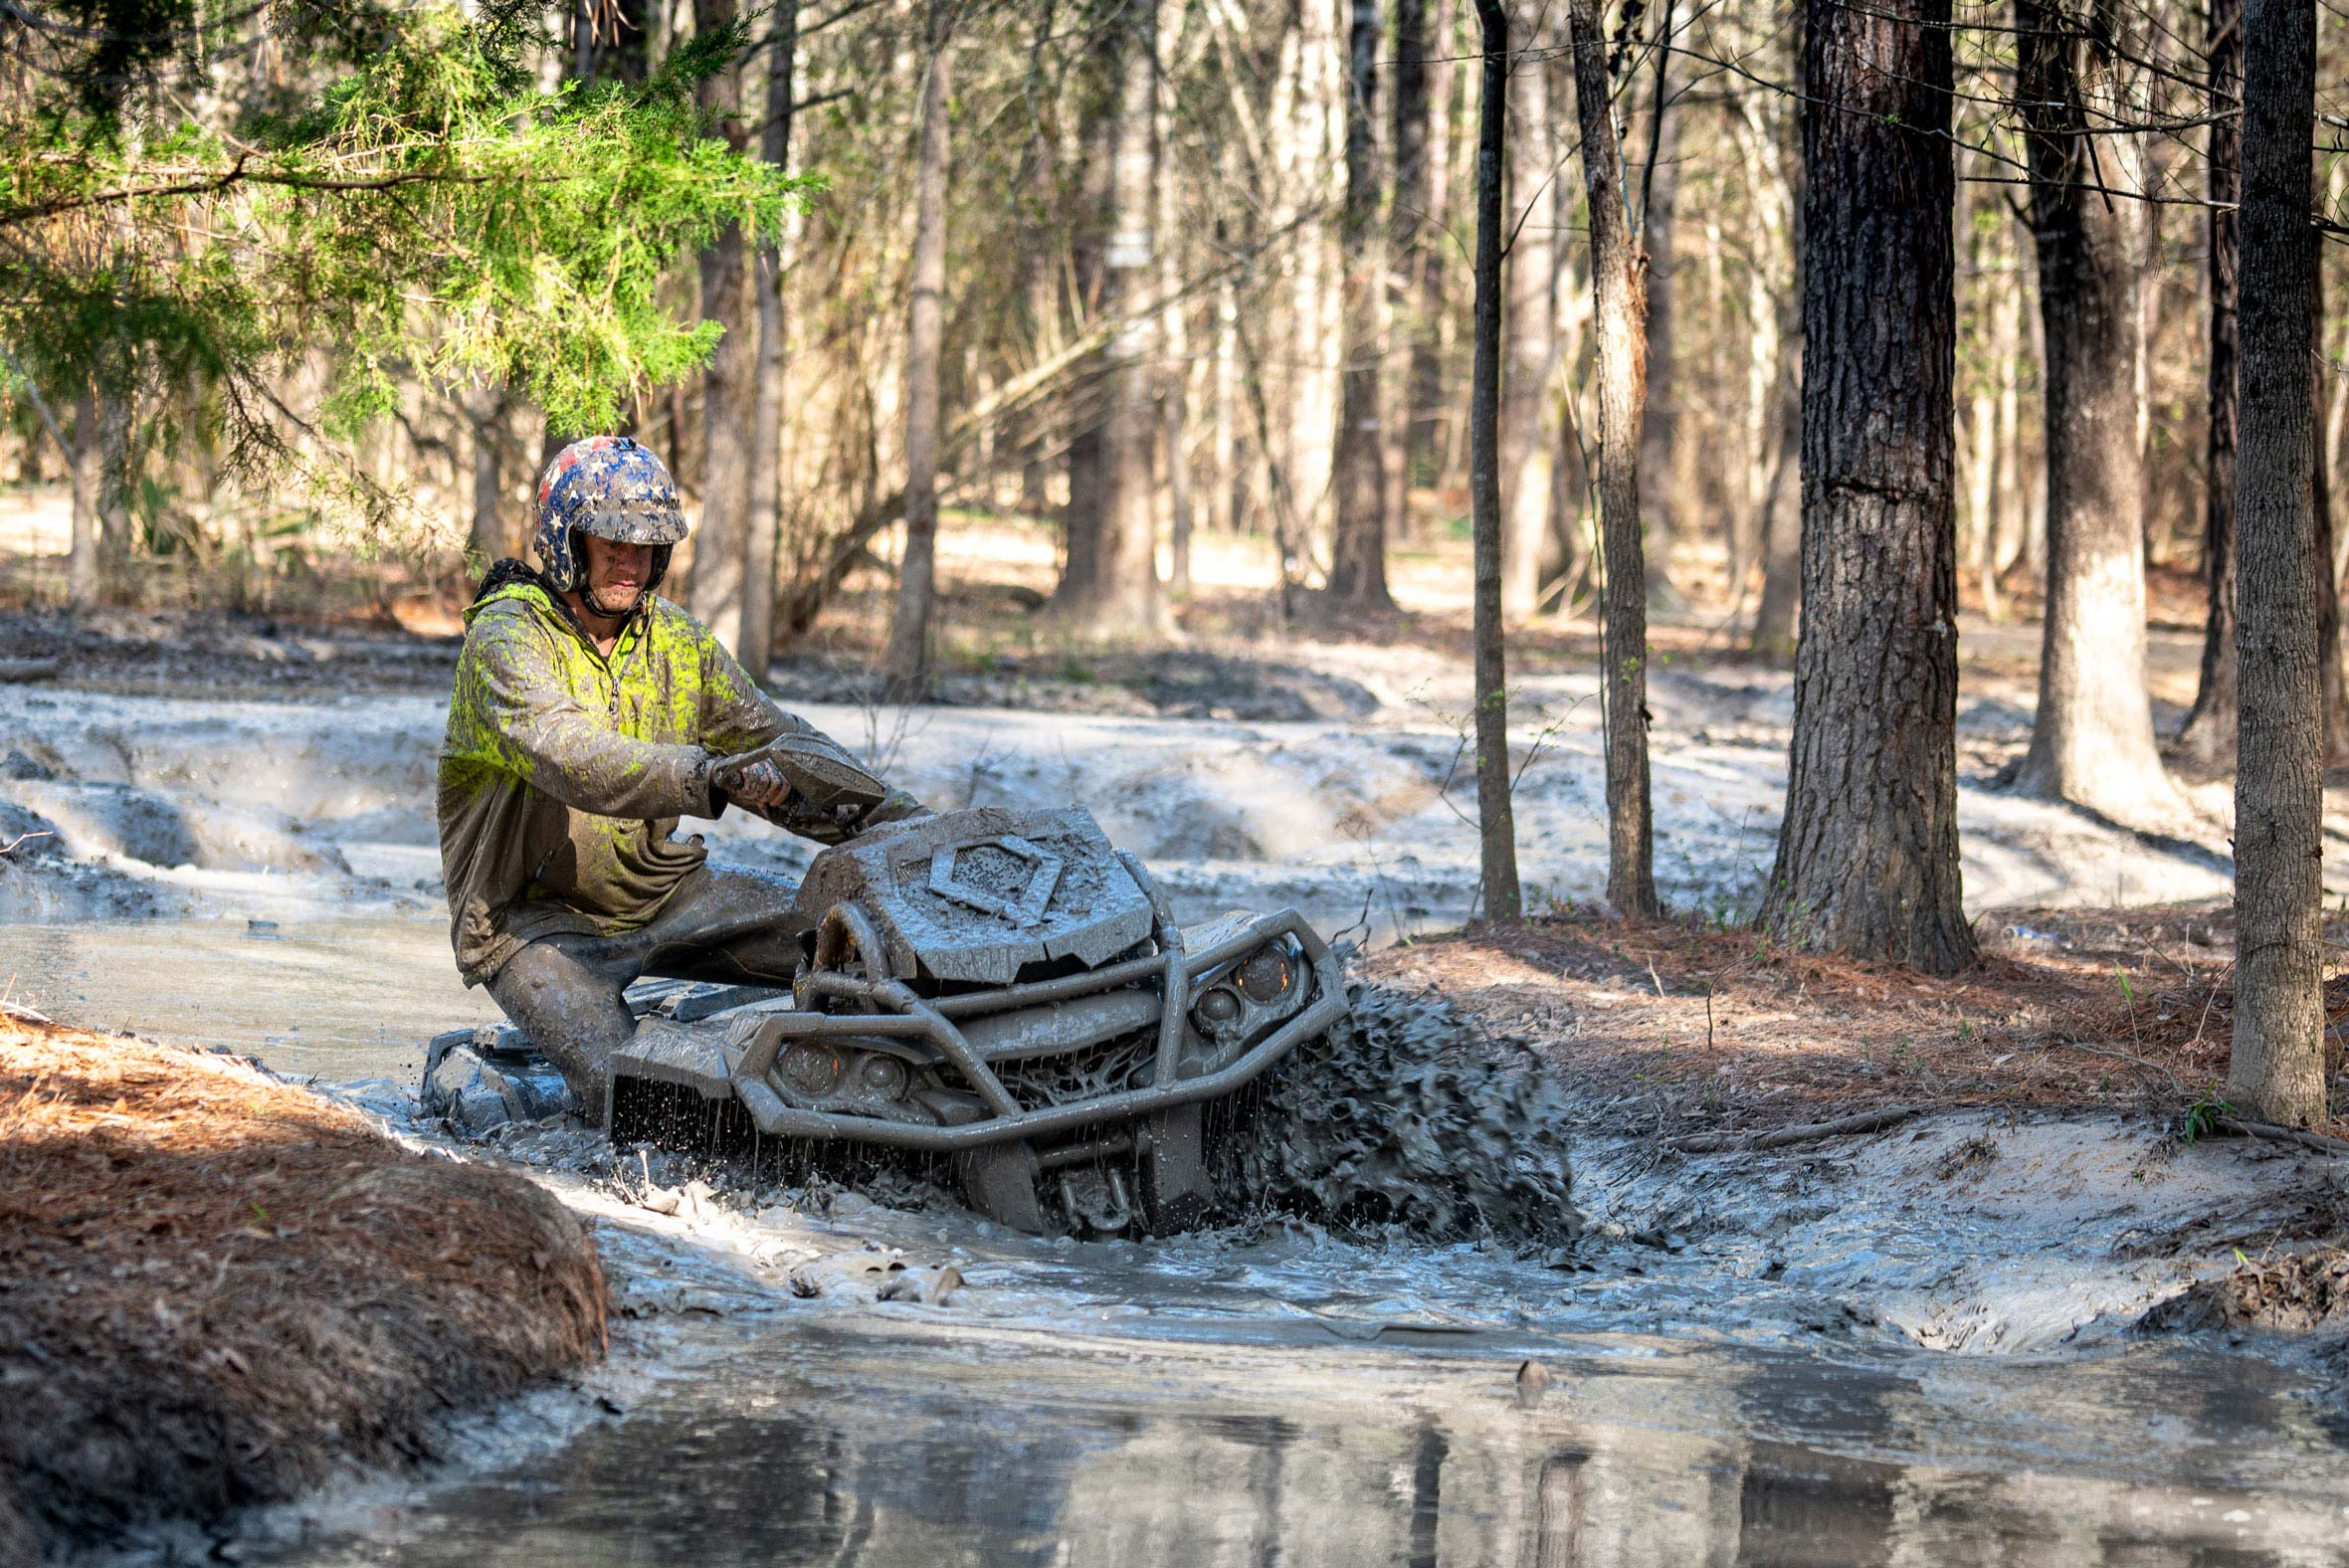 Dustin Jones riding a Can-Am Outlander X mr ATV deep in a mud trail